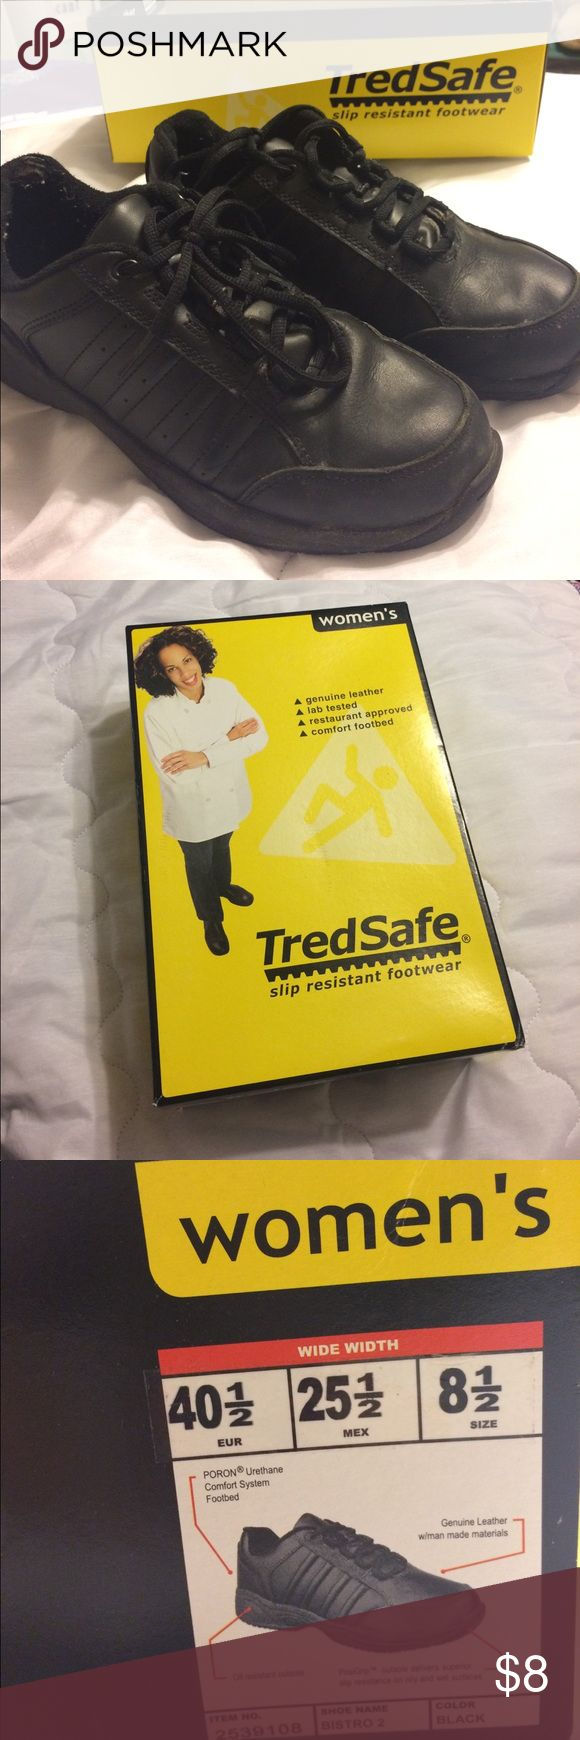 TredSafe Food Service Black Sneakers Oil and slip resistant black sneakers. Urethane comfort system footbed and genuine leather with man made materials. Worn for a brief food service job, but have LOTS of wear left in them. TredSafe Shoes Sneakers